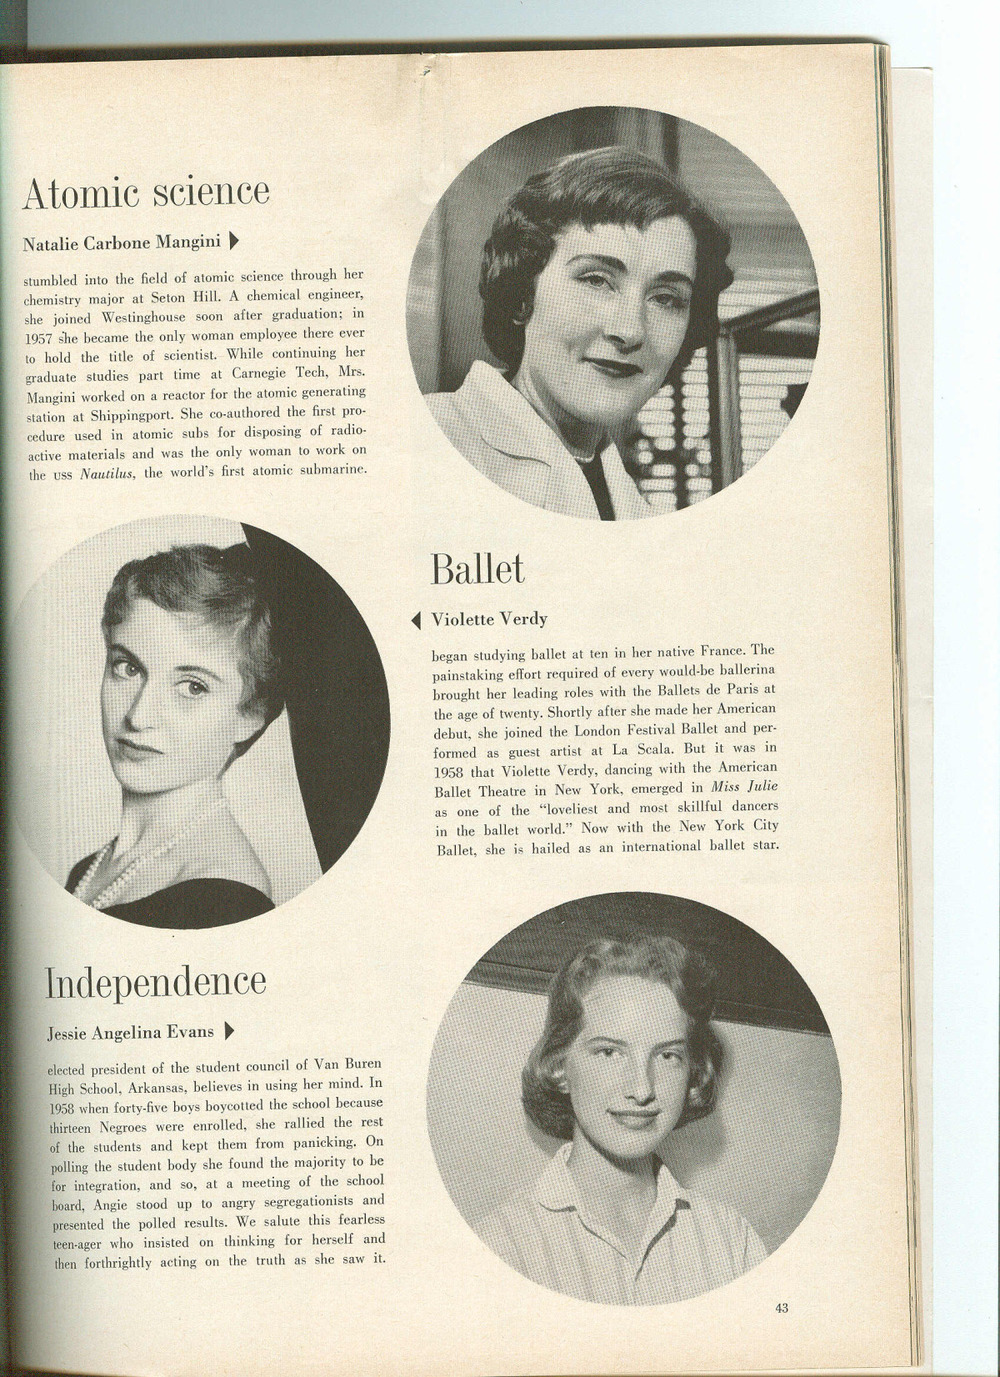 article from mademoiselle magazine in 1959.jpg